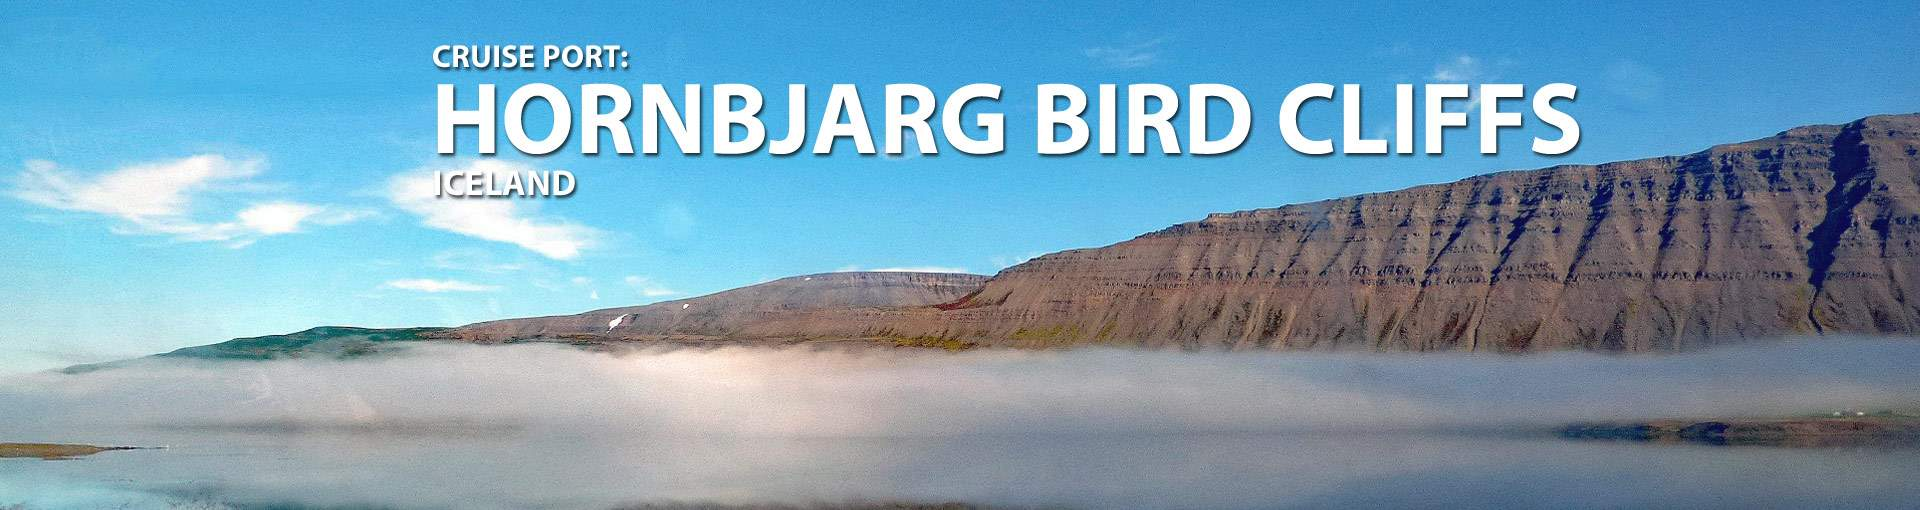 Hornbjarg Bird Cliffs, Iceland Cruise Port